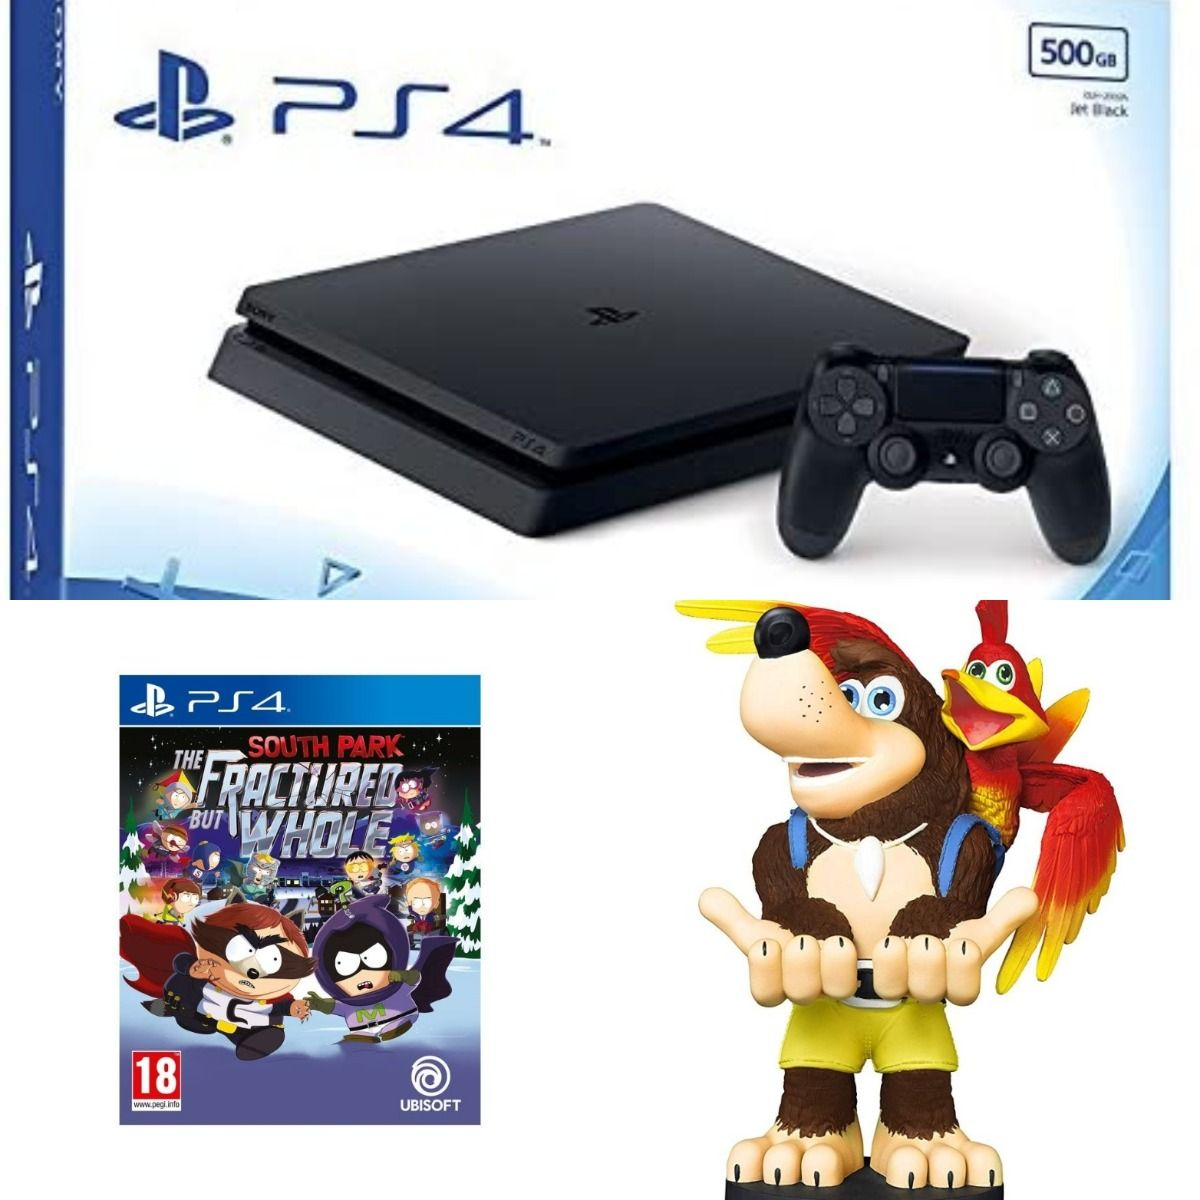 Sony PS4 Slim 500gb Black + South Park The Fractured But Whole + Cable Guy - Banjo Kazooie